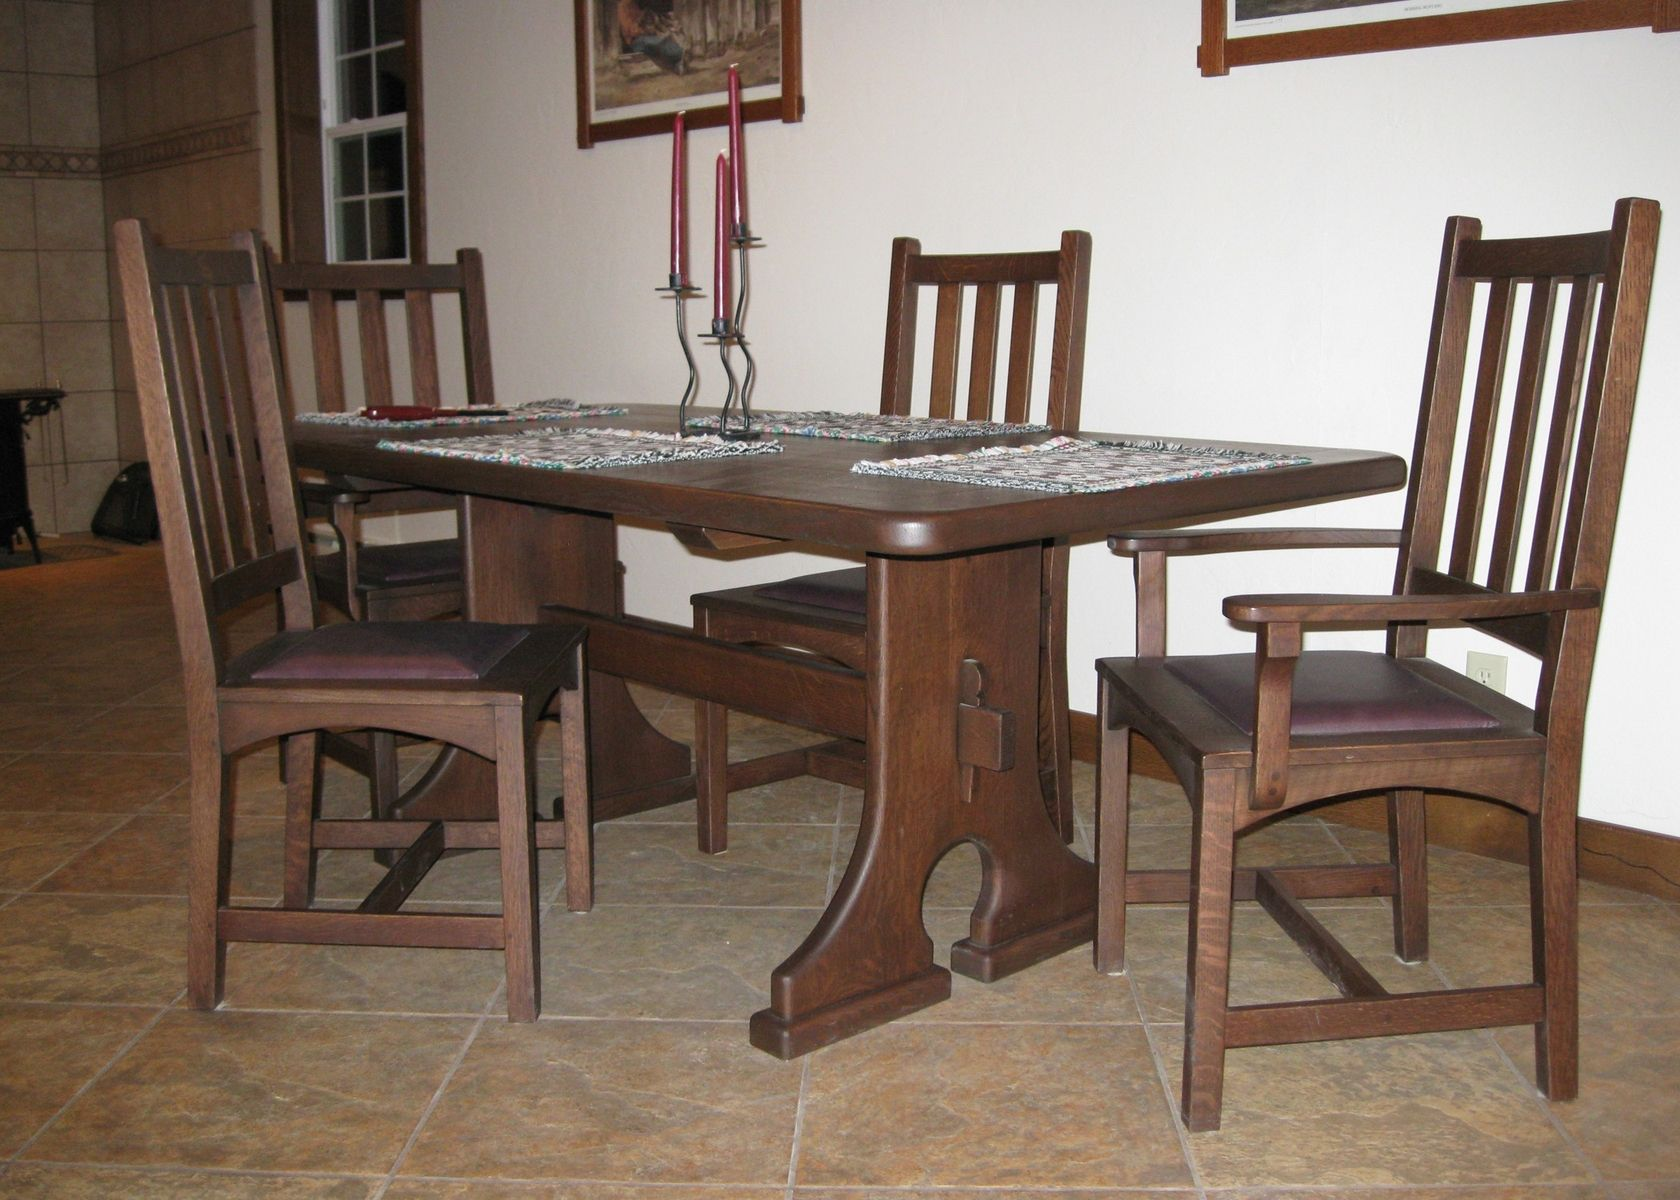 Custom made keyed trestle table